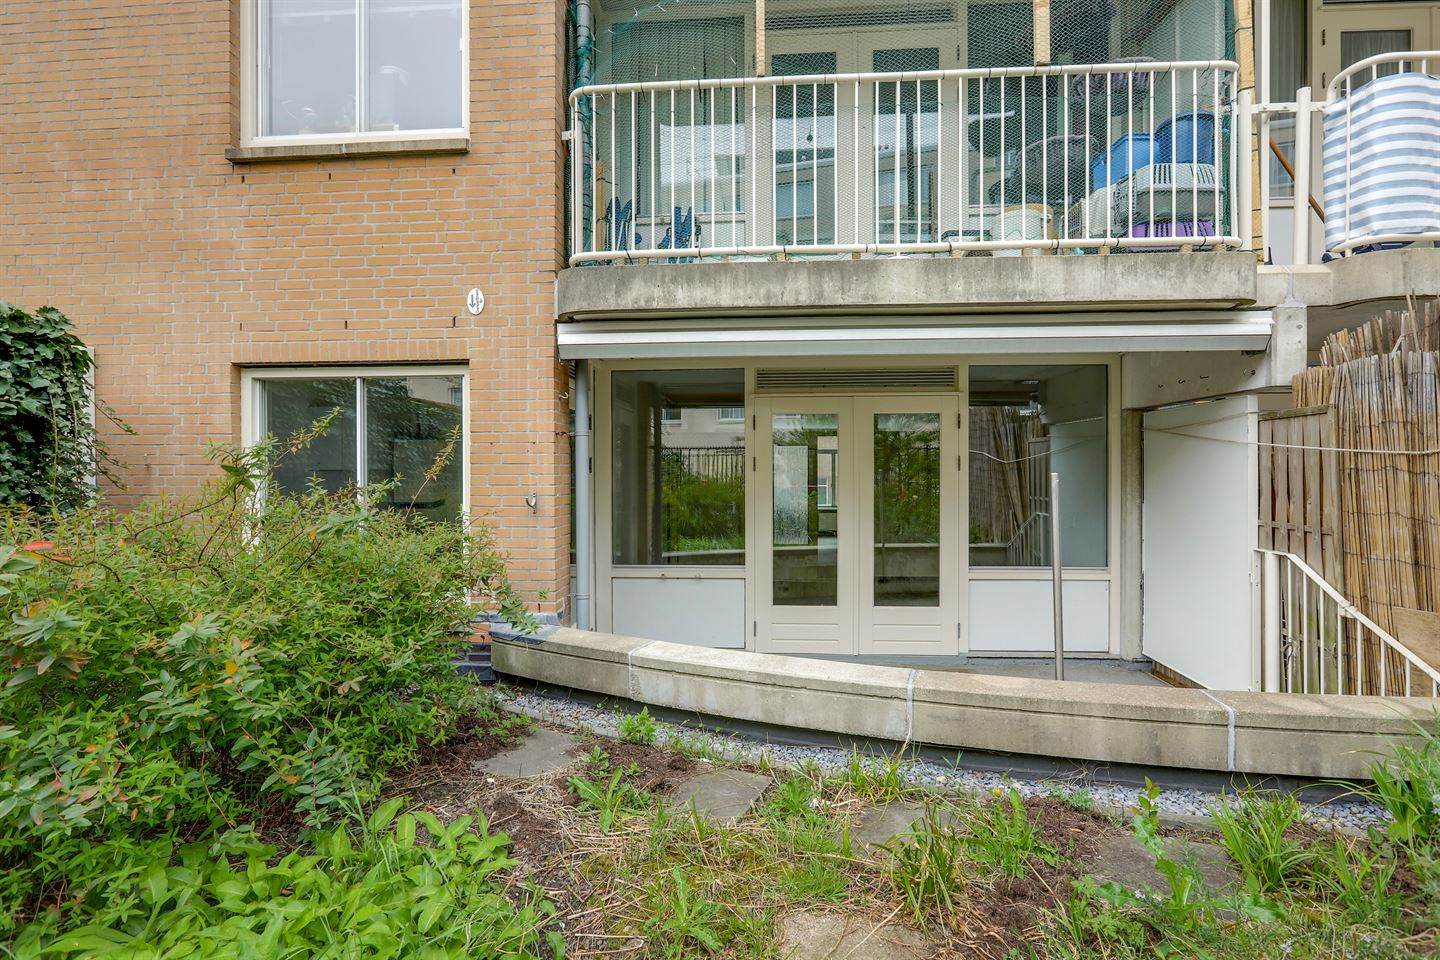 View photo 1 of Lutmastraat 34 -A